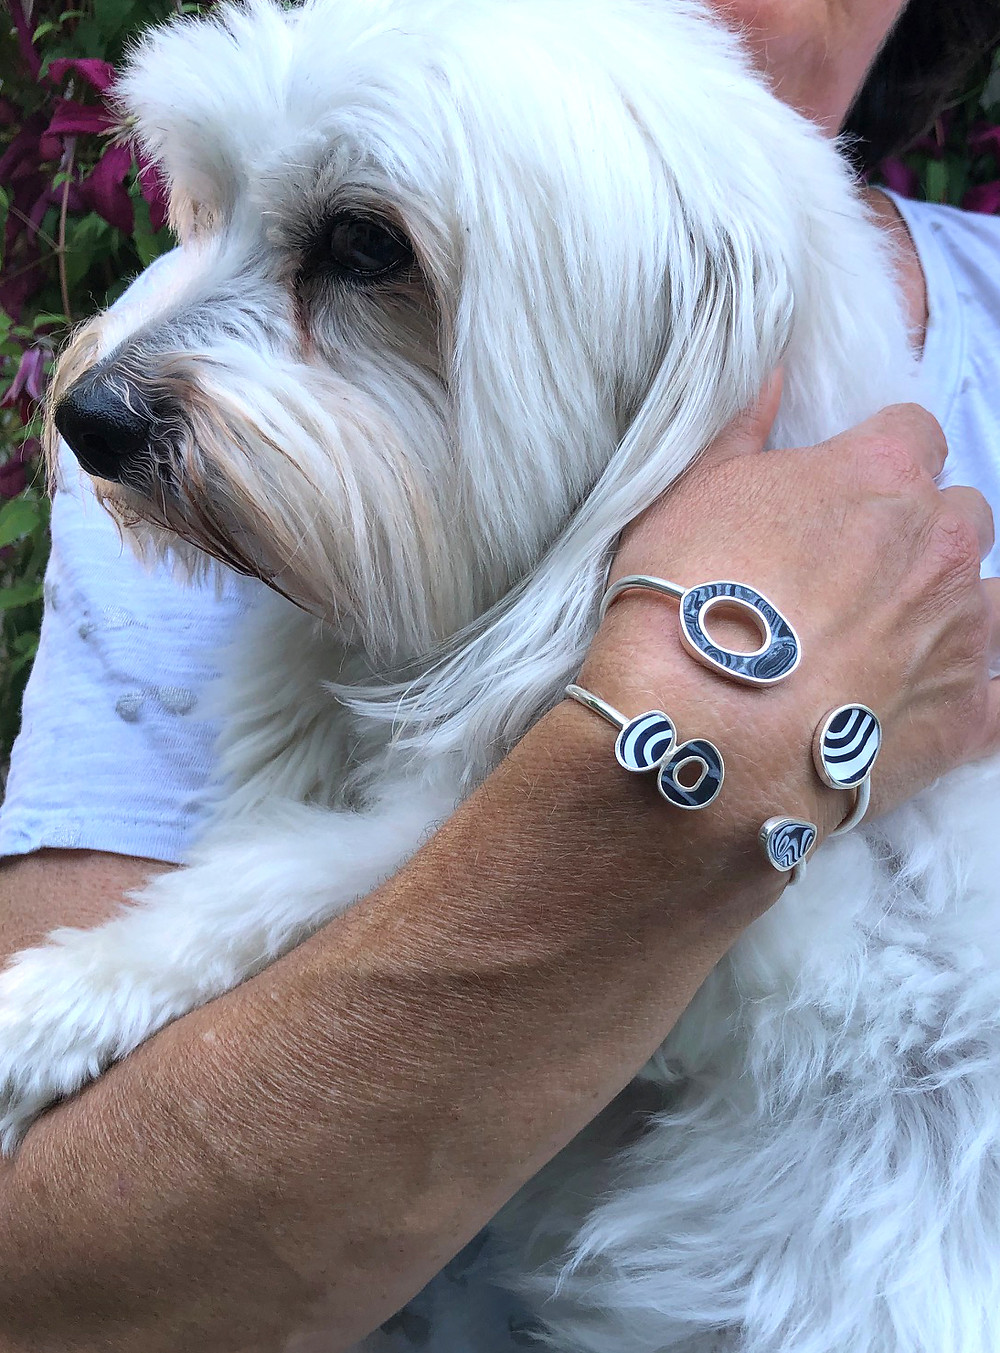 Coton de Tulear dog with Nancy Marland Jewelry Bebop silver and polymer bracelets